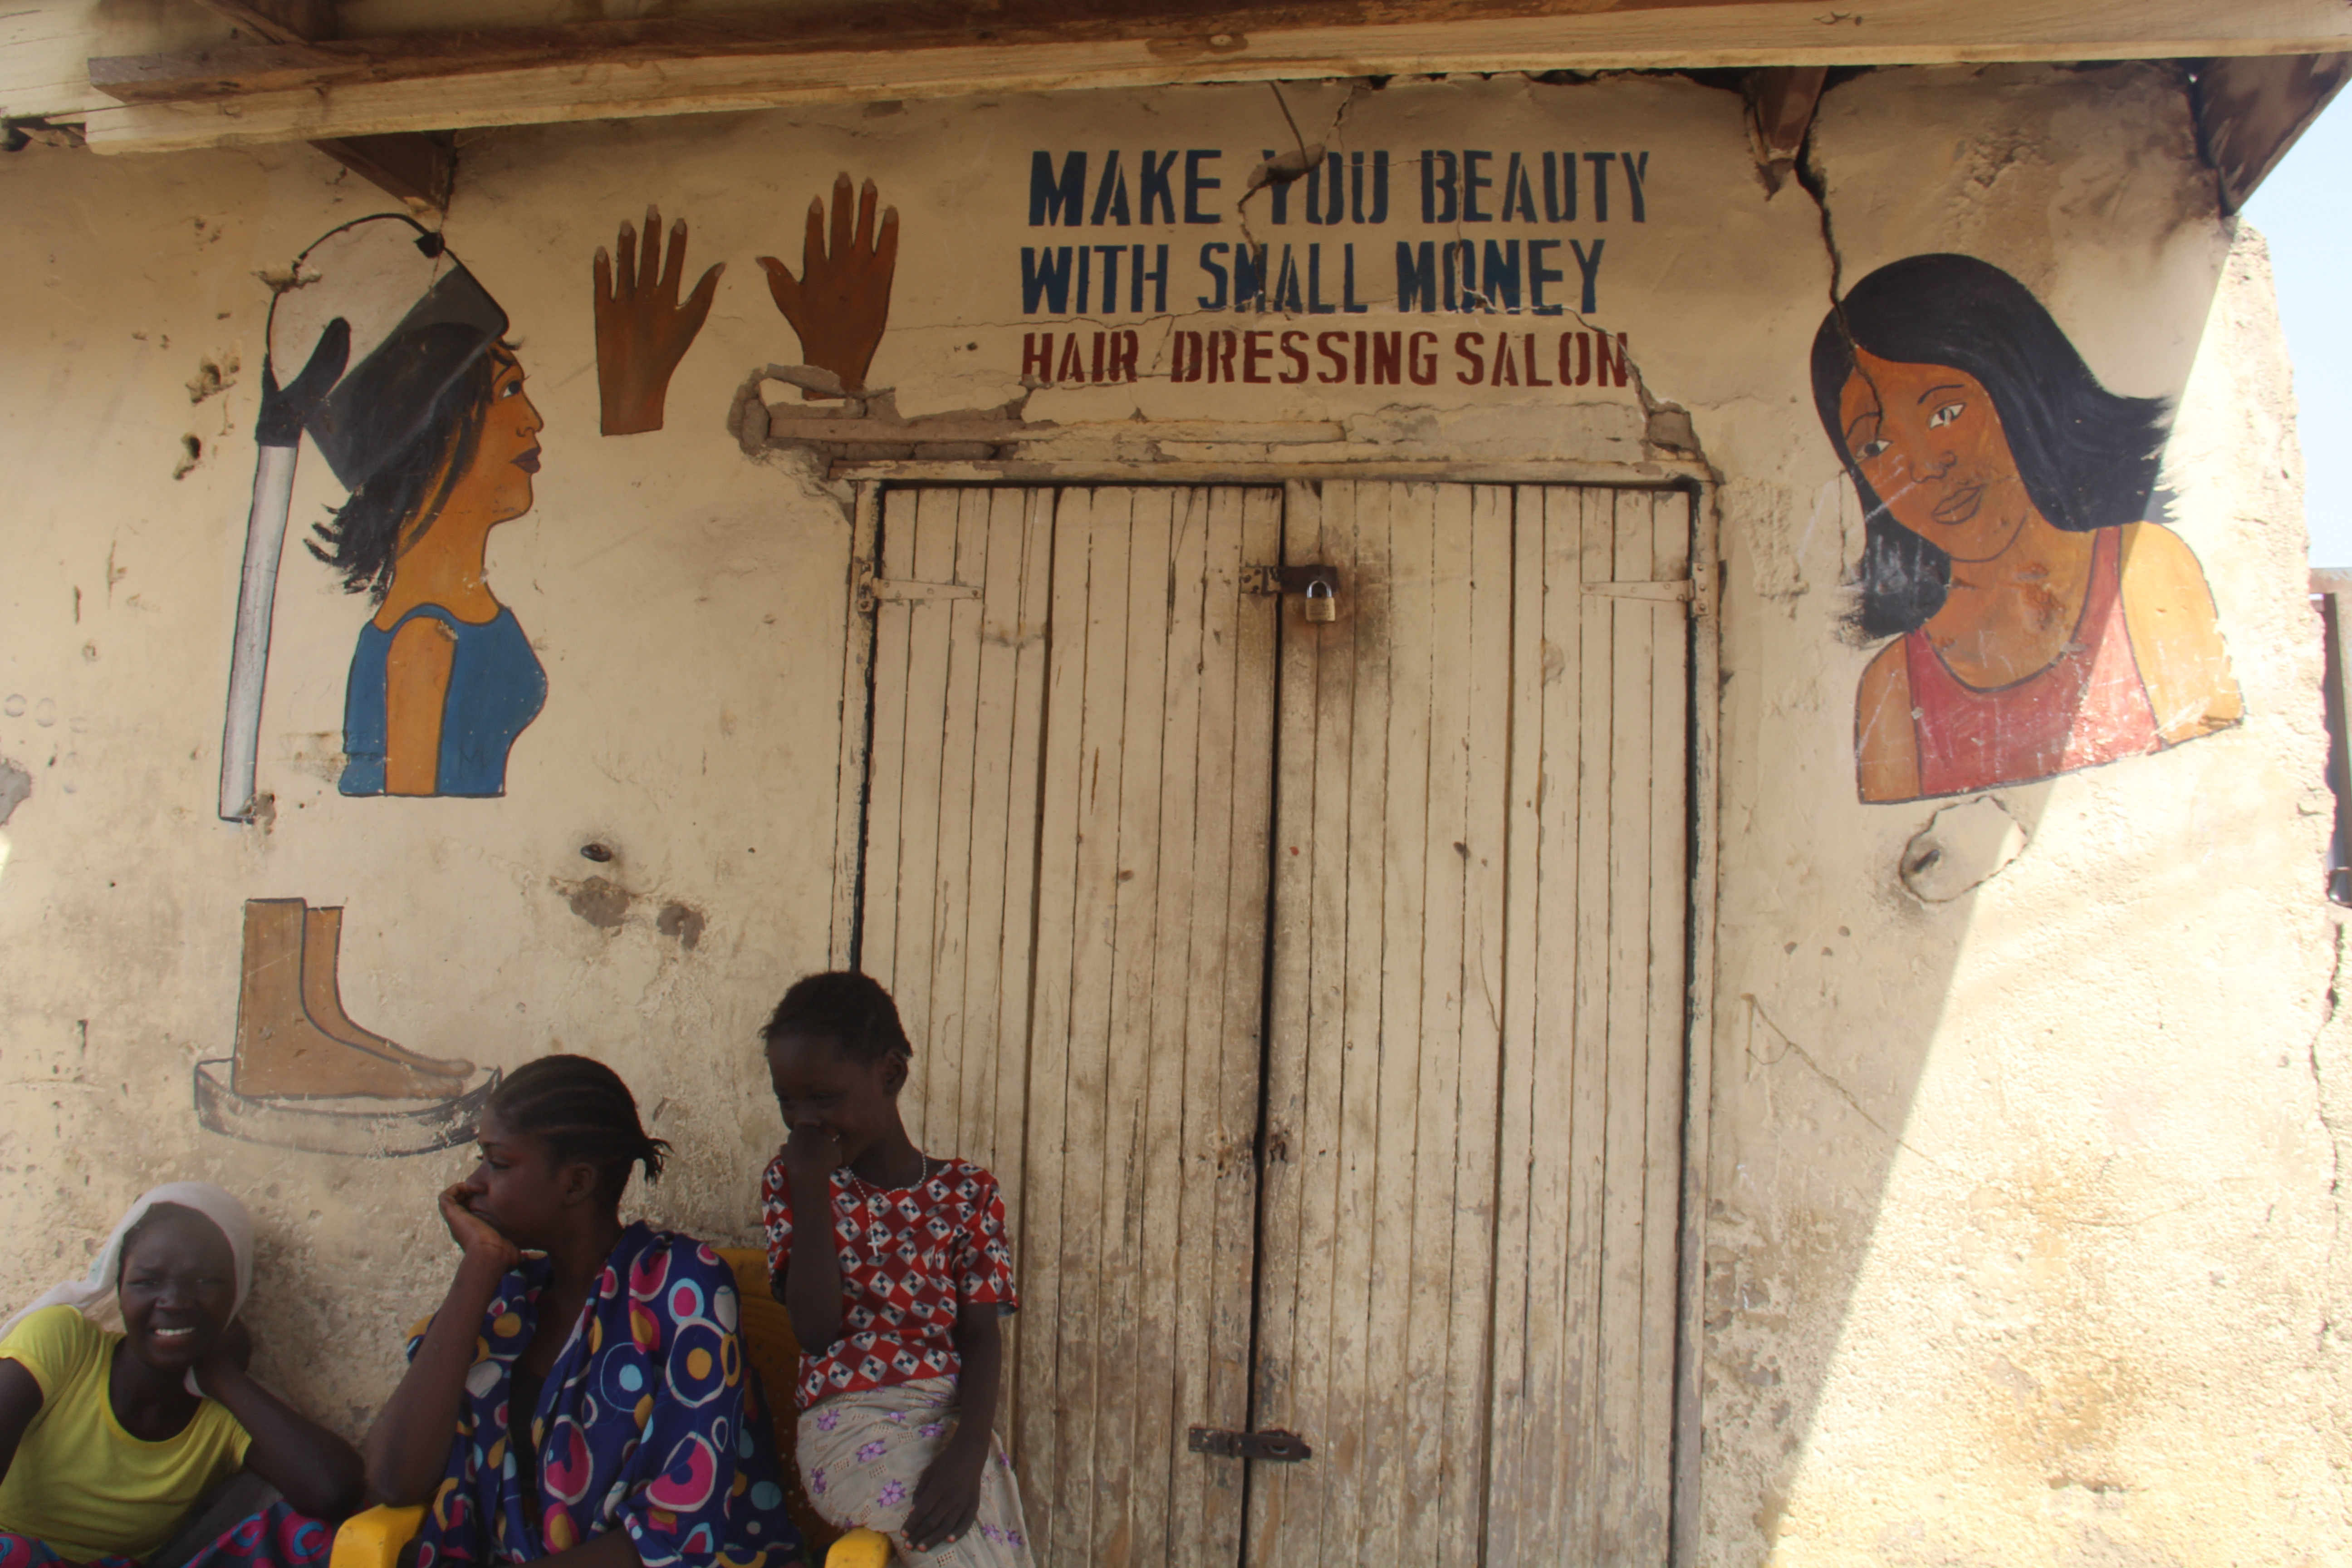 Beyond the bombs: The fate of small businesses in the birthplace of Boko Haram